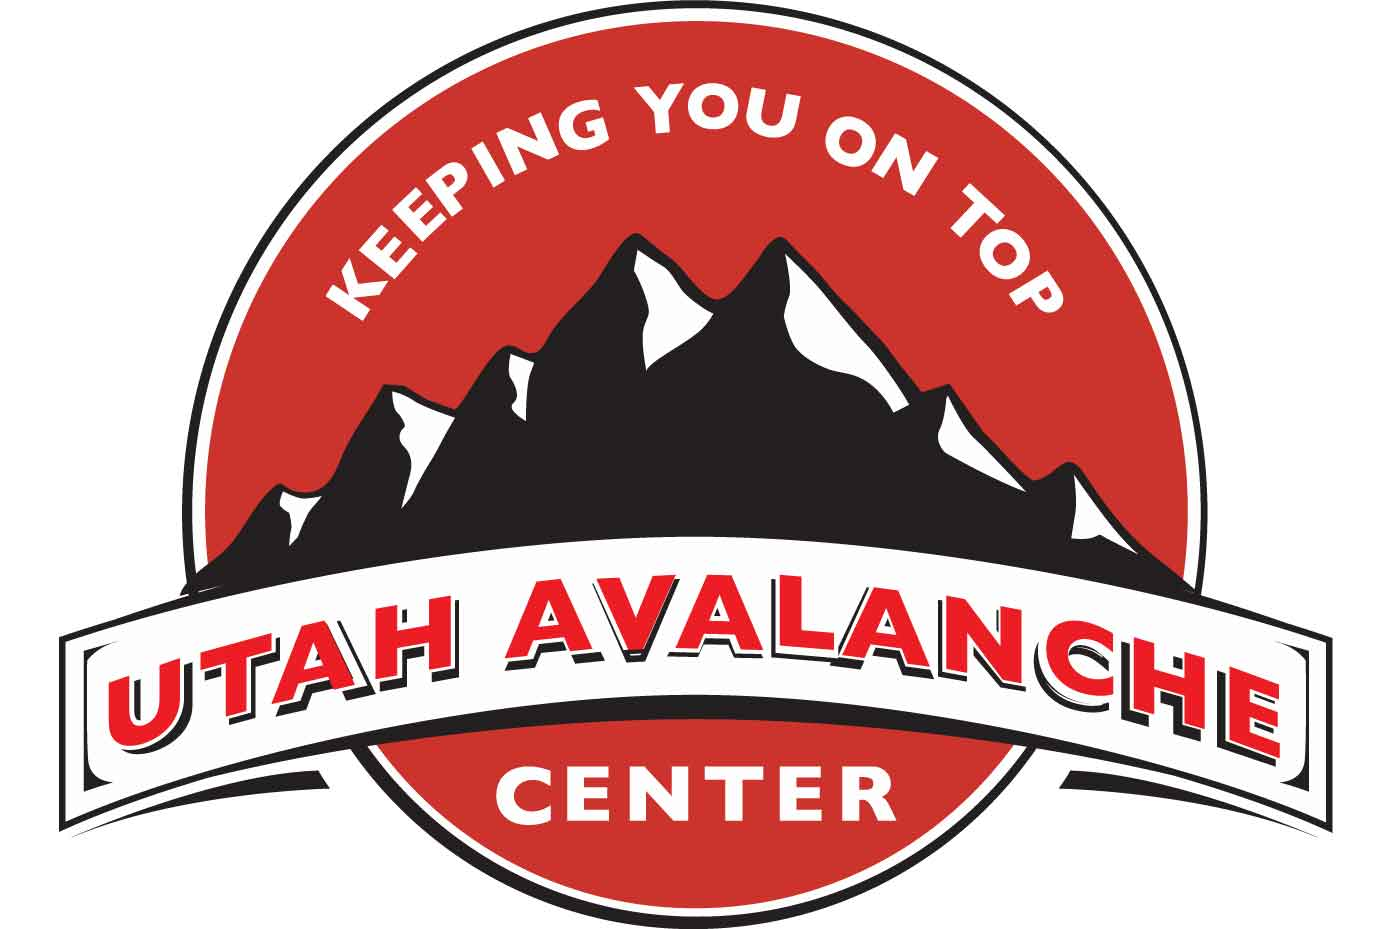 Utah Avalanche Center - Logo